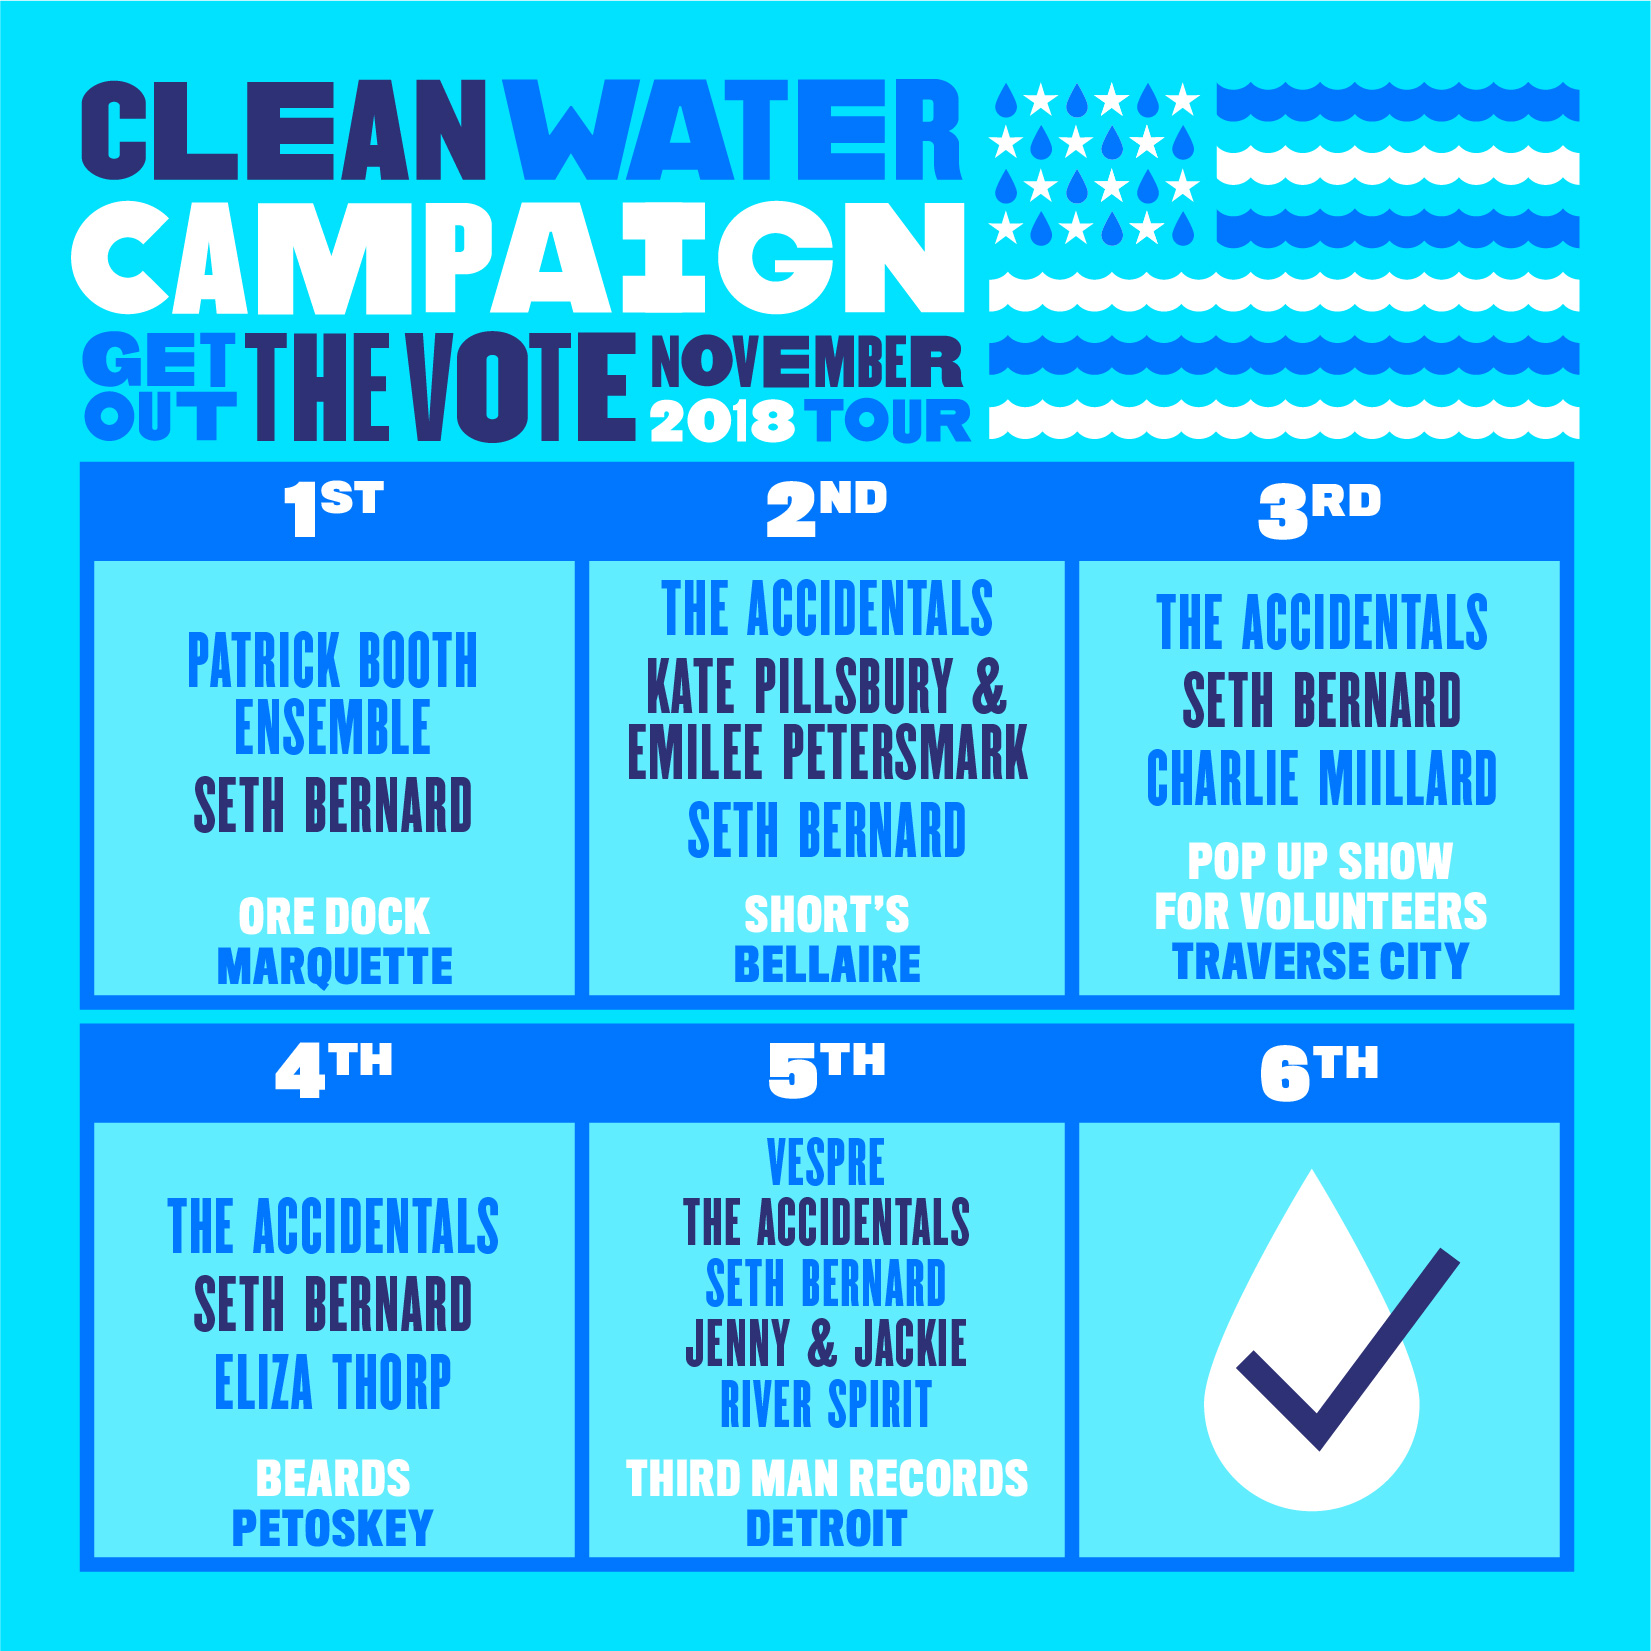 """ANNOUNCEMENT:  Clean Water Campaign for Michigan 's Get out the Vote Tour!!  NOV 1:  Patrick Booth Ensemble / Seth Bernard - CWC GotV (Marquette)  @  Ore Dock Brewing Company  NOV 2:  The Accidentals/Kate Pillsbury & Emilee Petersmark/Seth Bernard  (Bellaire) @  Short's Brewing Company  NOV 3:  The Accidentals/Charlie Millard/SethBernard - CWC GotV (Tr City)  @ Location TBA NOV 4:  The Accidentals/Seth Bernard/Eliza Thorp - CWC GotV (Petoskey)  @  Beards Brewery  NOV 5:  Vespre/The Accidentals/Seth Bernard/Jenny & Jackie/River Spirit  (Detroit) @  Third Man Records Cass Corridor   NOV 6: Vote, Vote, VOTE!!  Awesome concerts + short term directives + long term relationship building Music + speeches + Get out the Vote info + CWC video screenings  """"Those of us lucky enough to call the Great Lakes our home know that fresh, clean, safe water is our shared identity. Our shared legacy. Our shared responsibility. We've found ourselves in the midst of a crisis that will not fix itself. Let's make some magic happen and change the game together!""""  - Seth Bernard , Founder and Director of the Clean Water Campaign for Michigan  Poster: Will Thomas   #micleanh2o   #ourwater   #tuesday   michigancleanwater.org"""